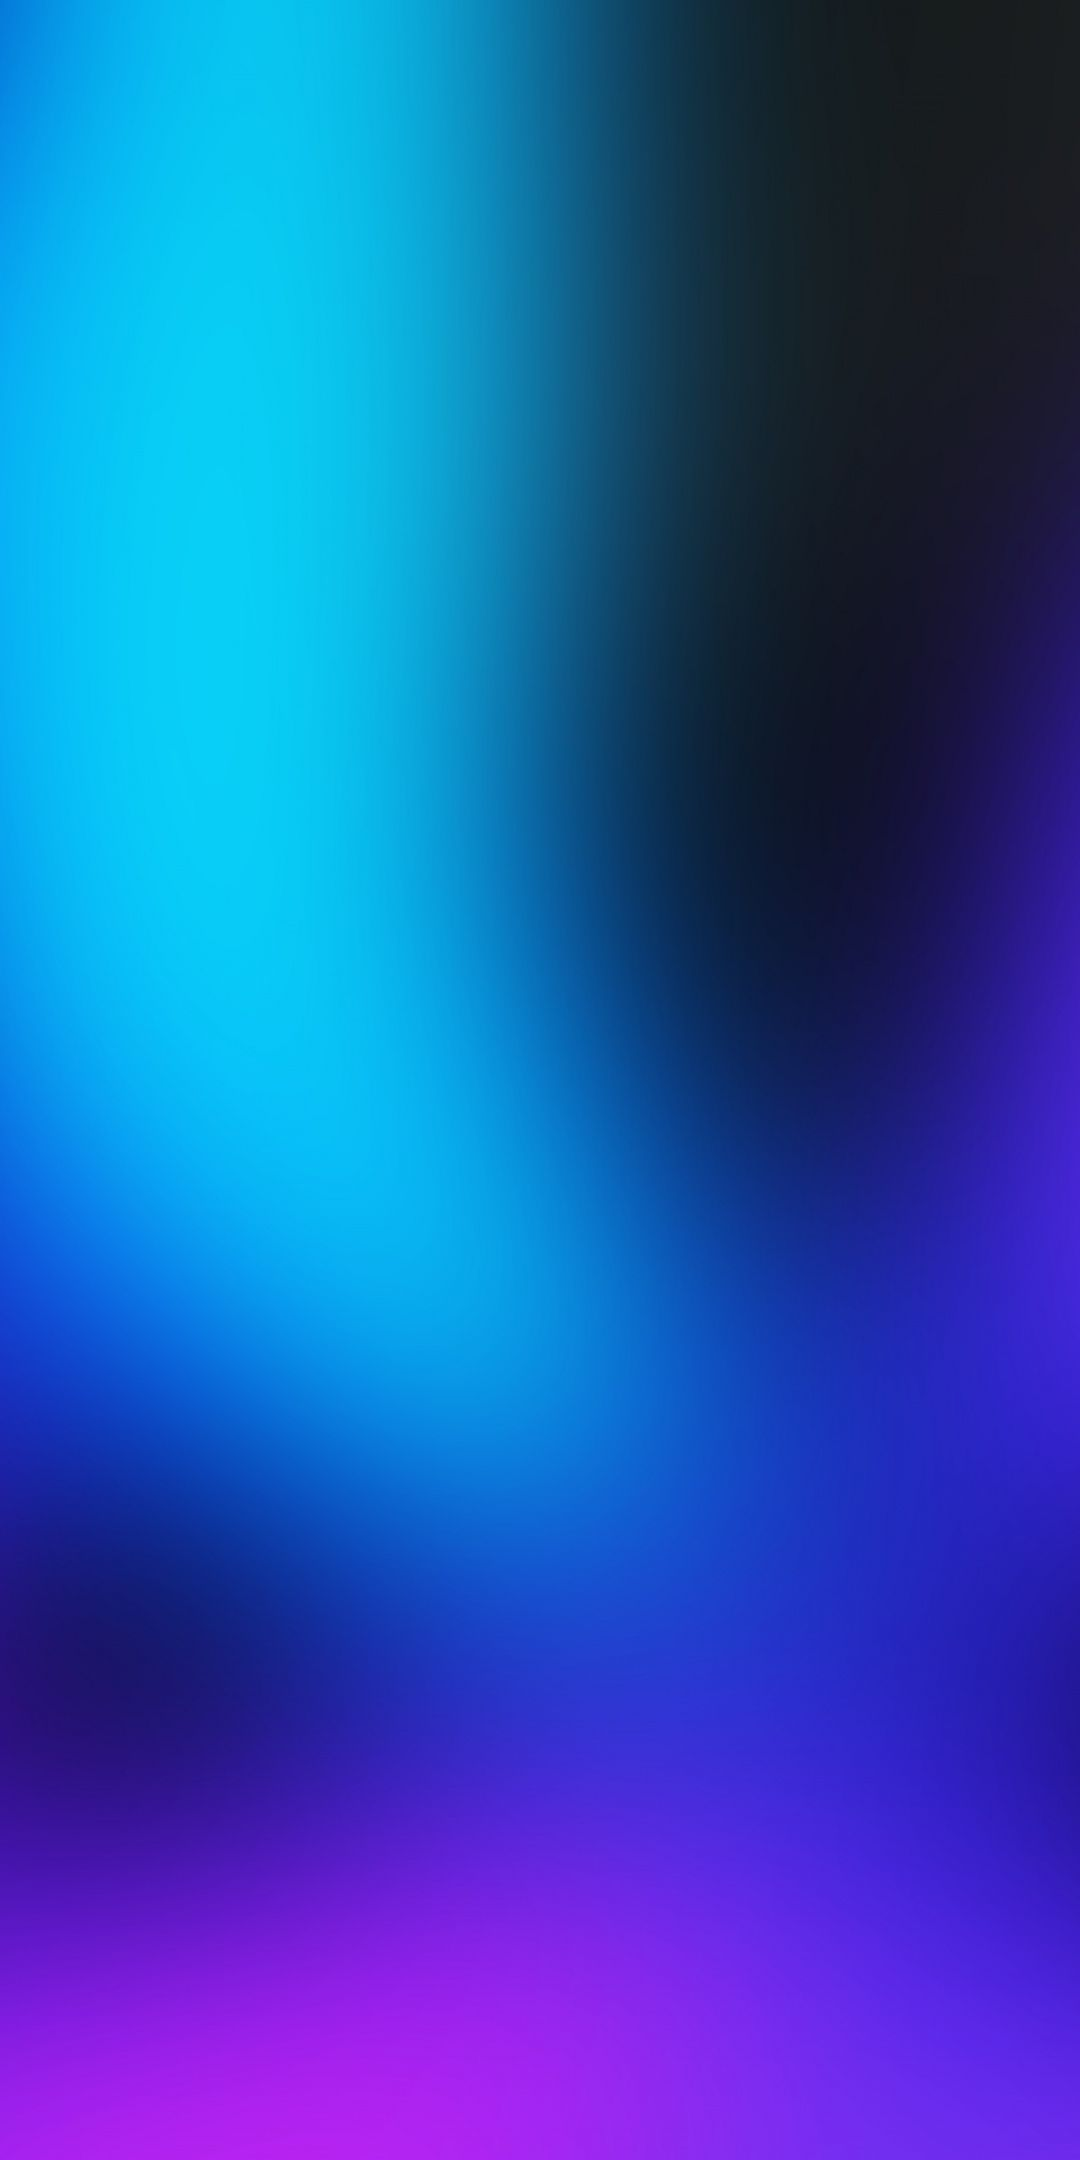 Neon, colors, gradient, blur, colorful, 1080x2160